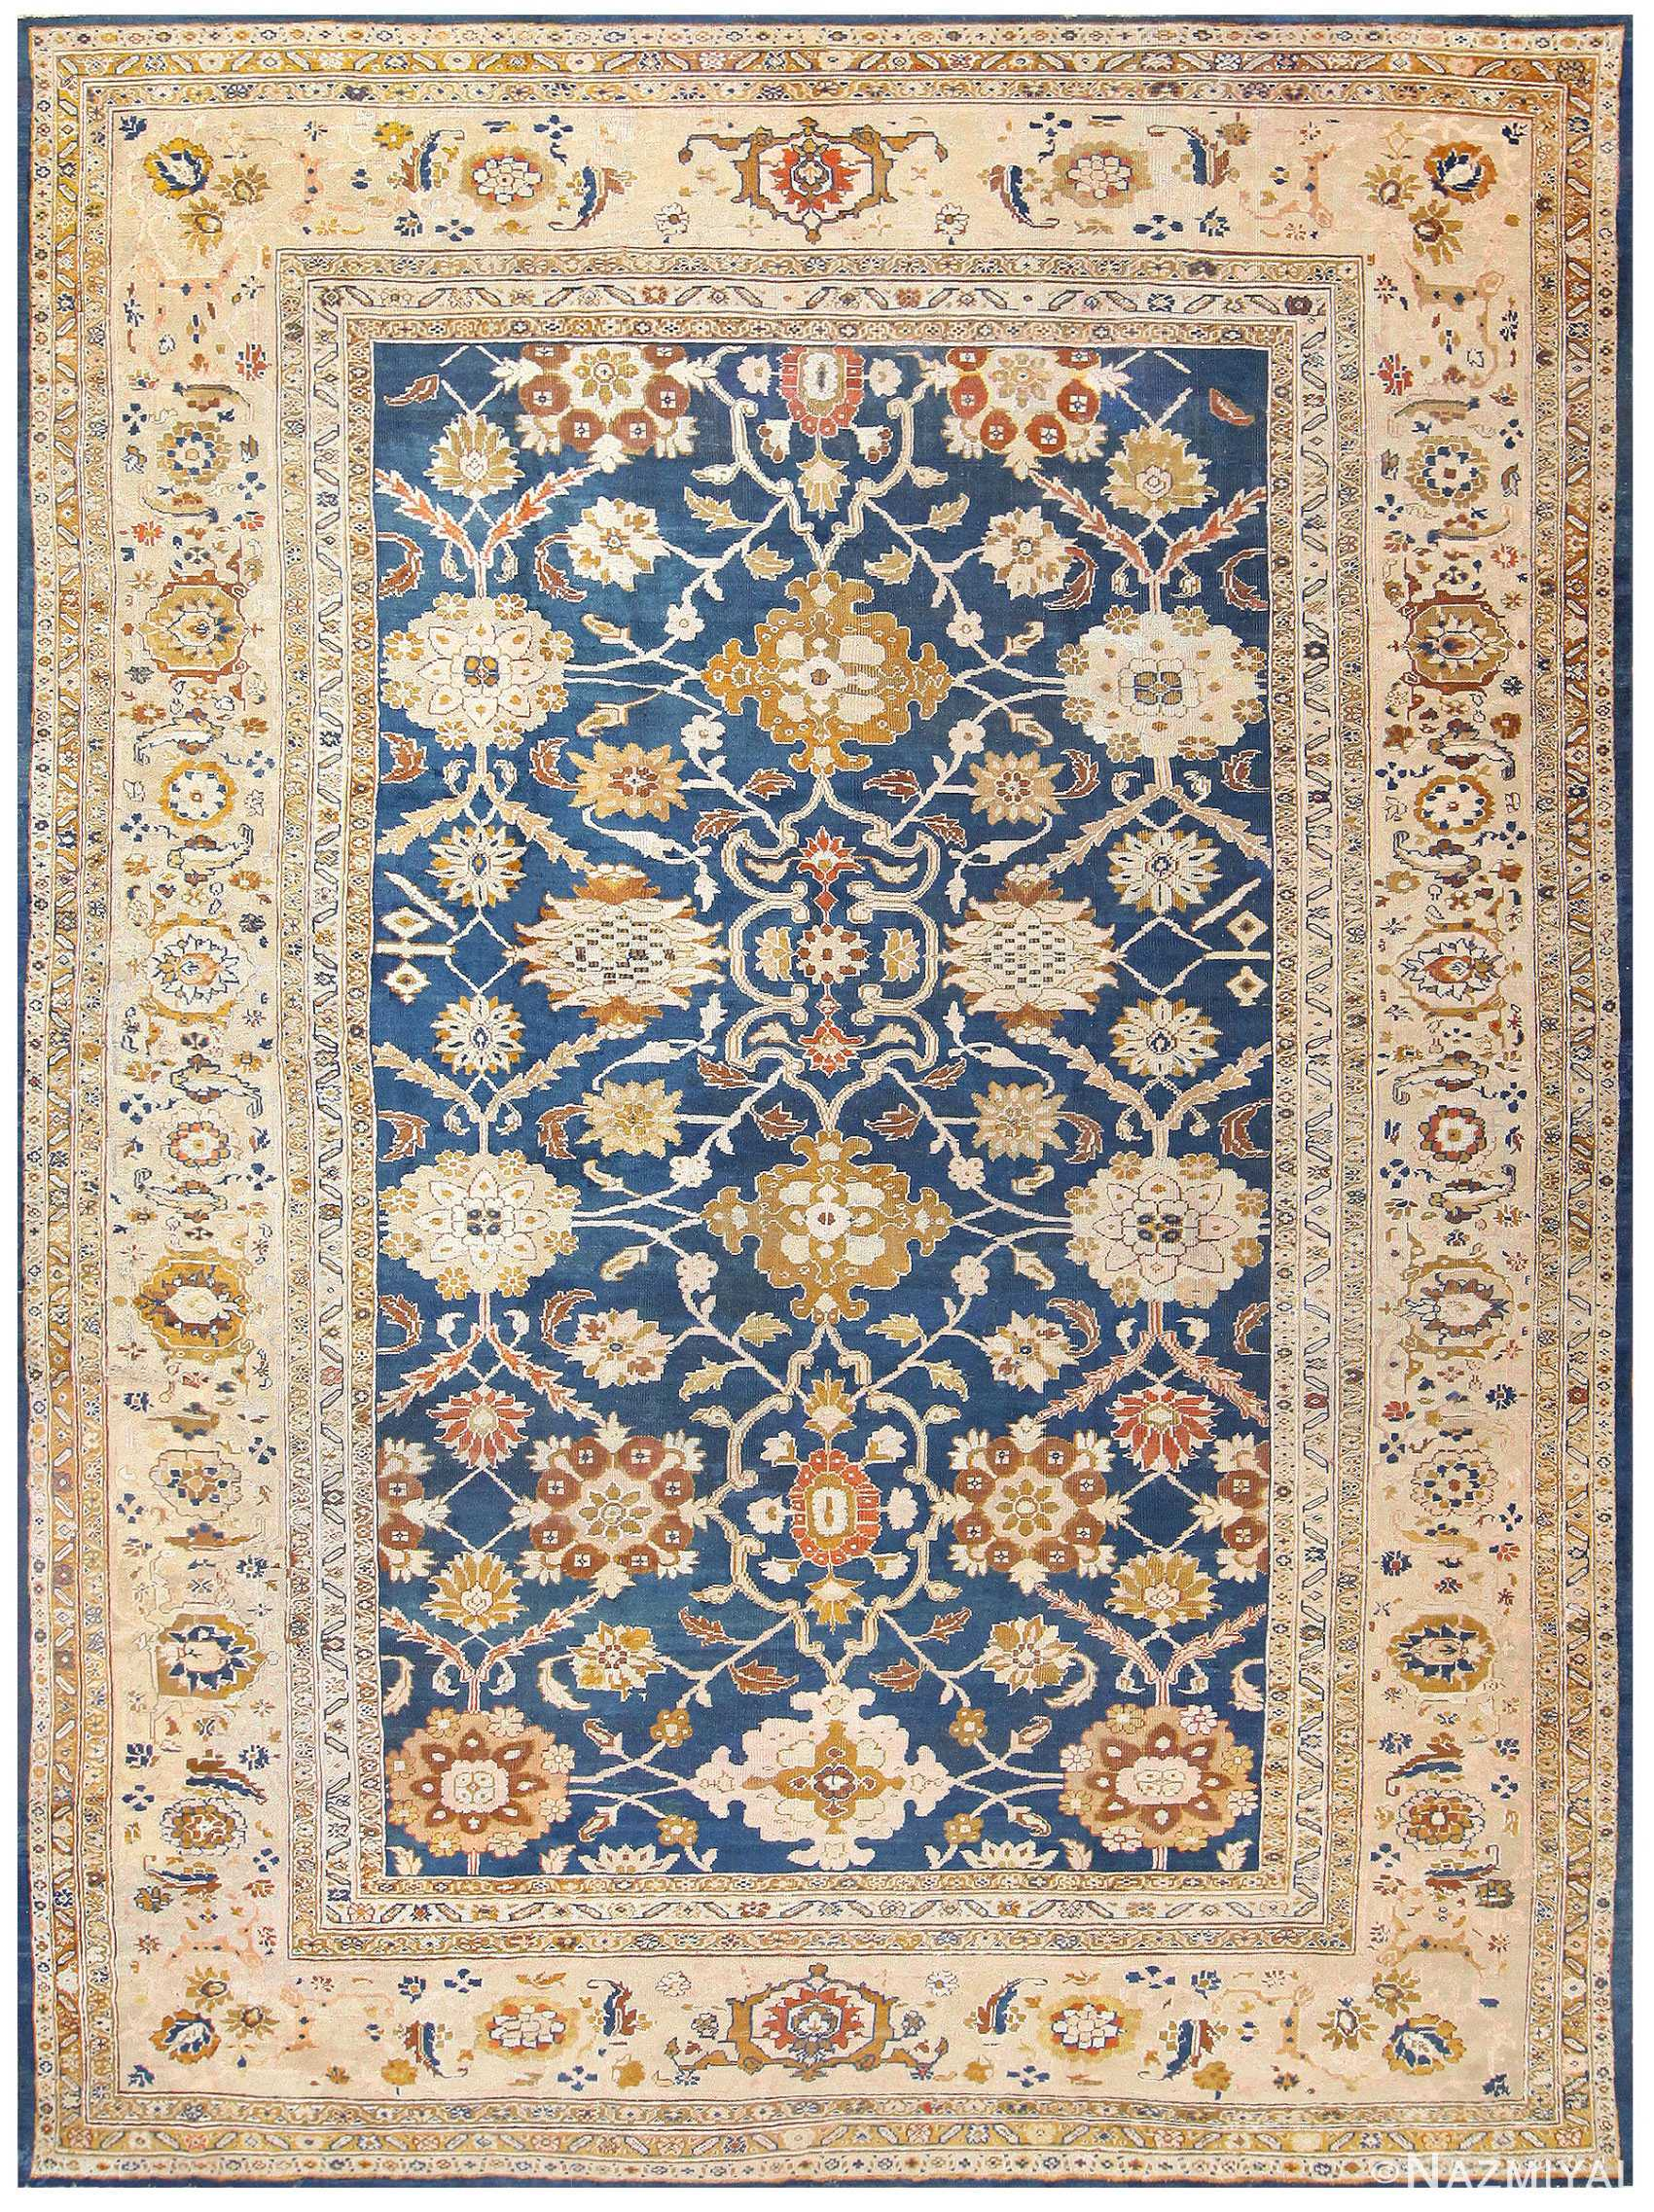 Antique Persian Sultanabad Carpet by Ziegler 50198